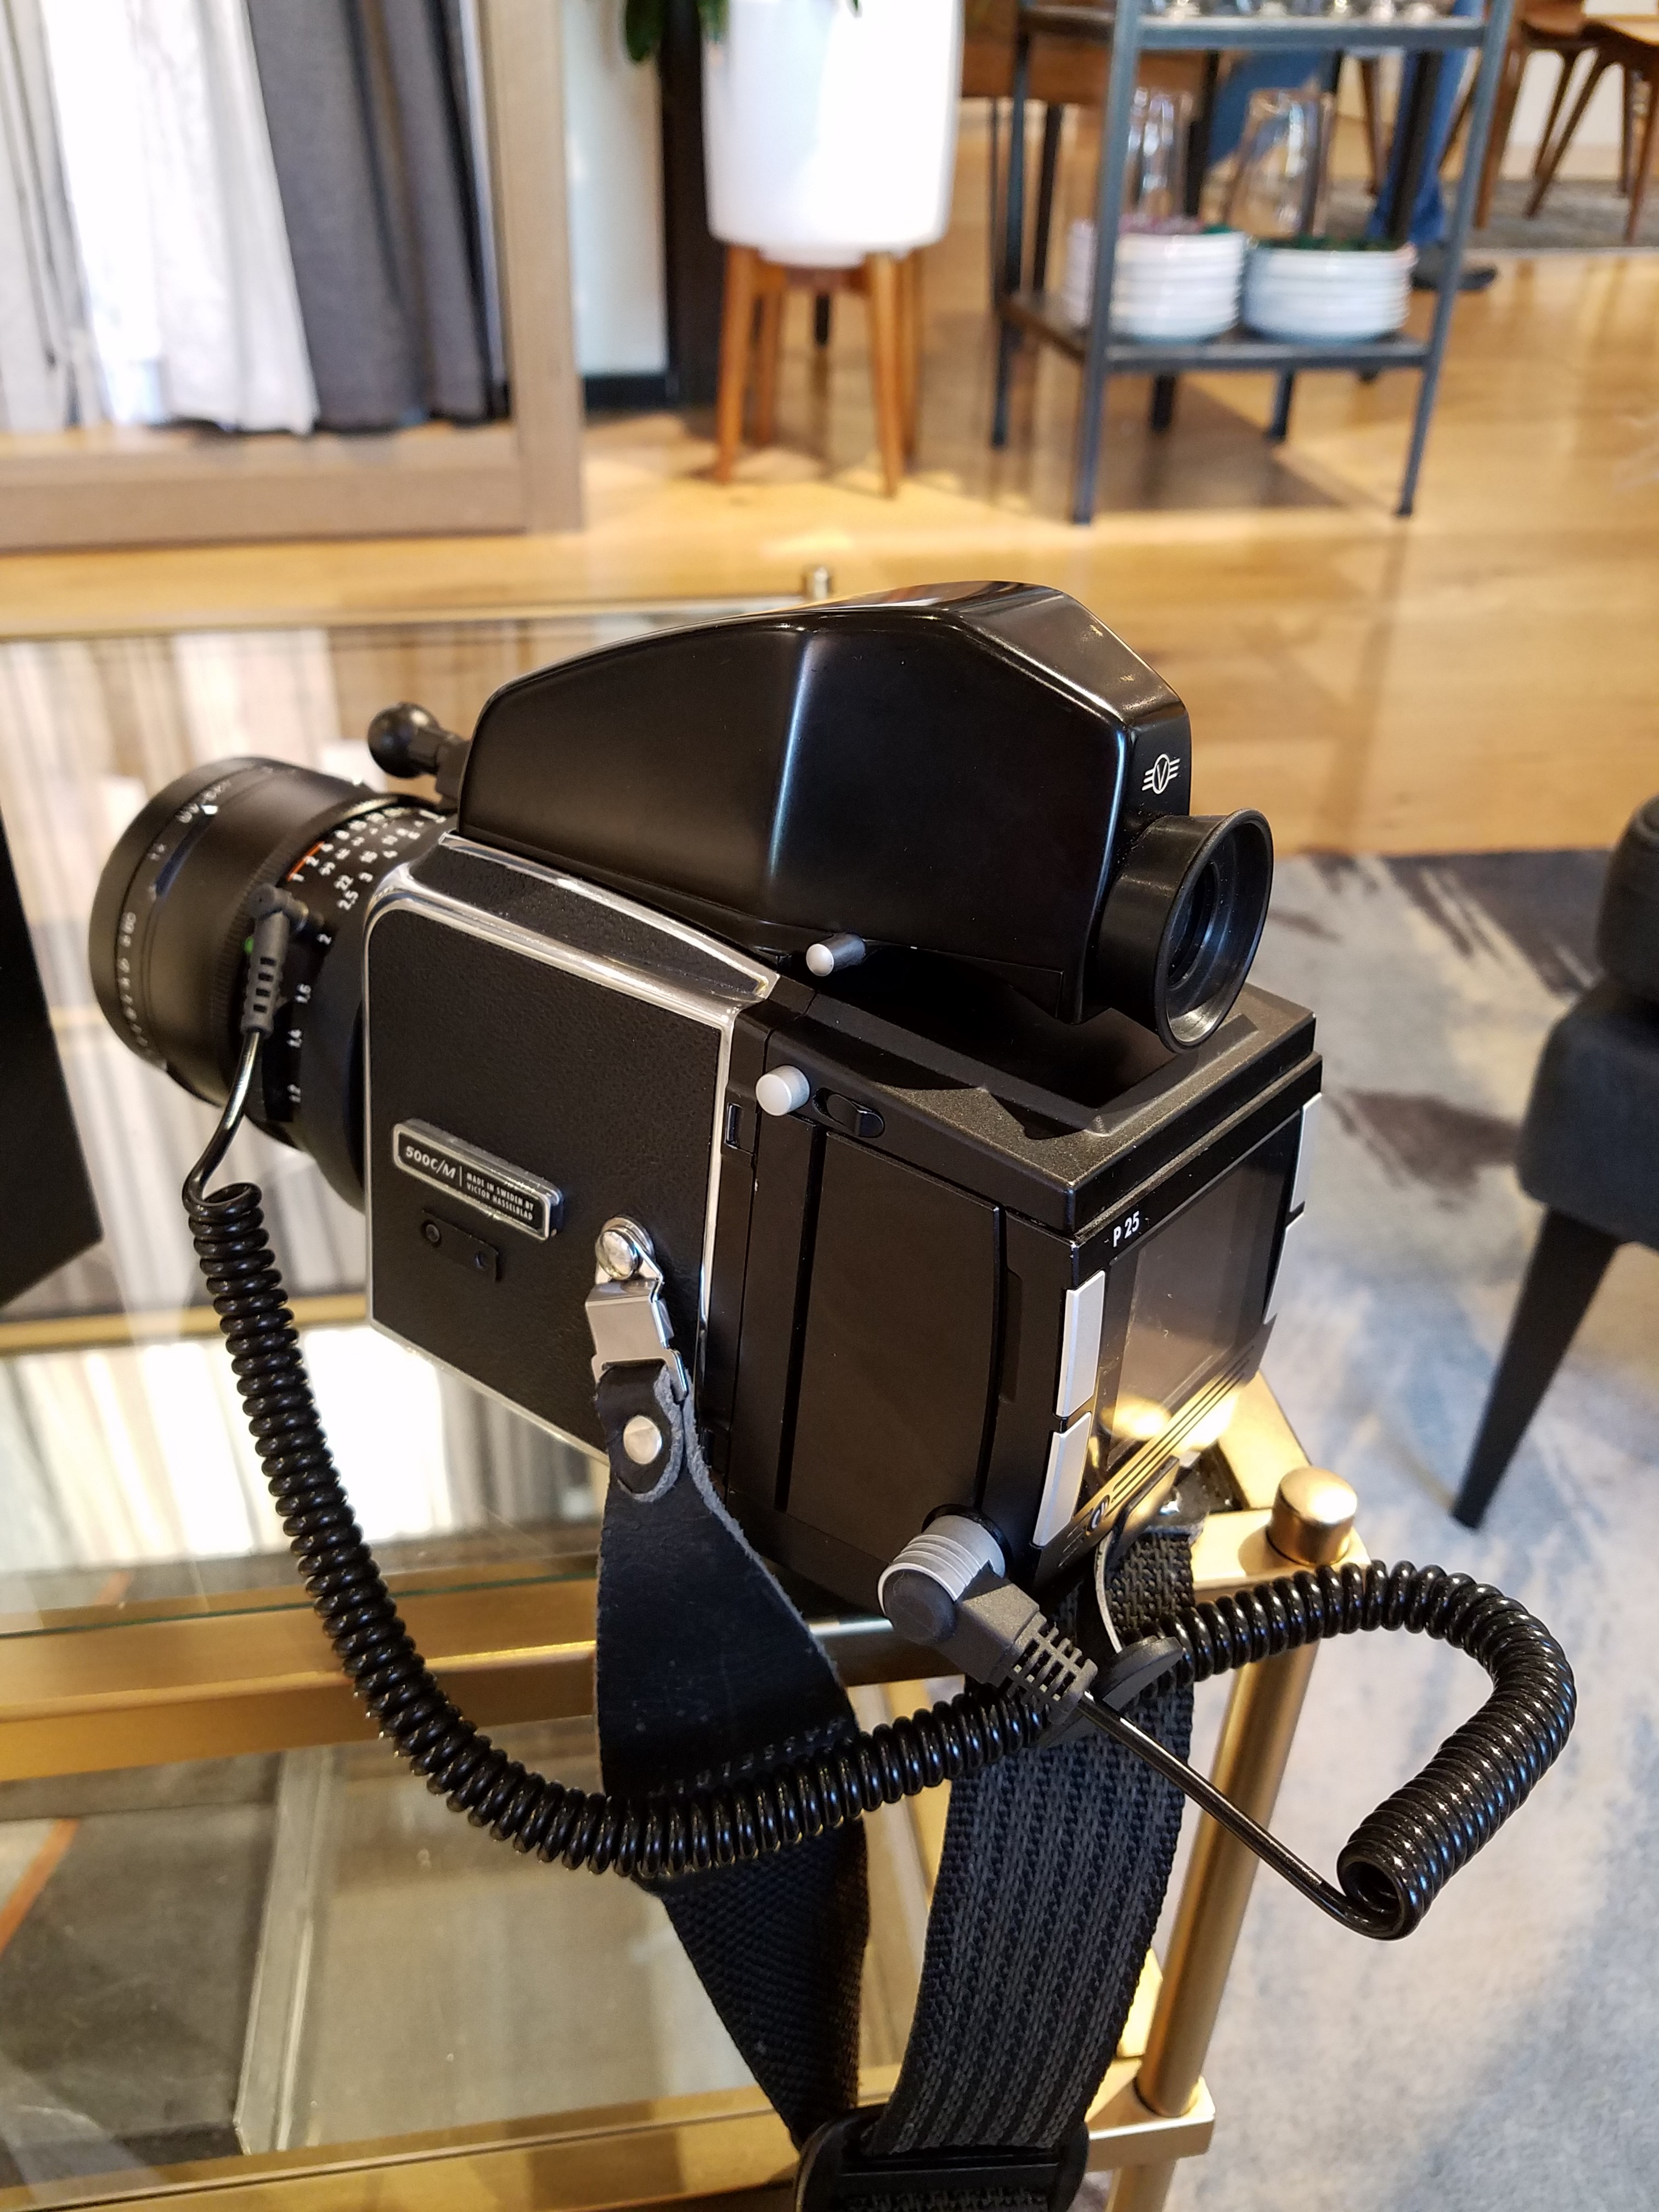 Hasselblad 500c/m with a Phase One back: Medium Format Talk